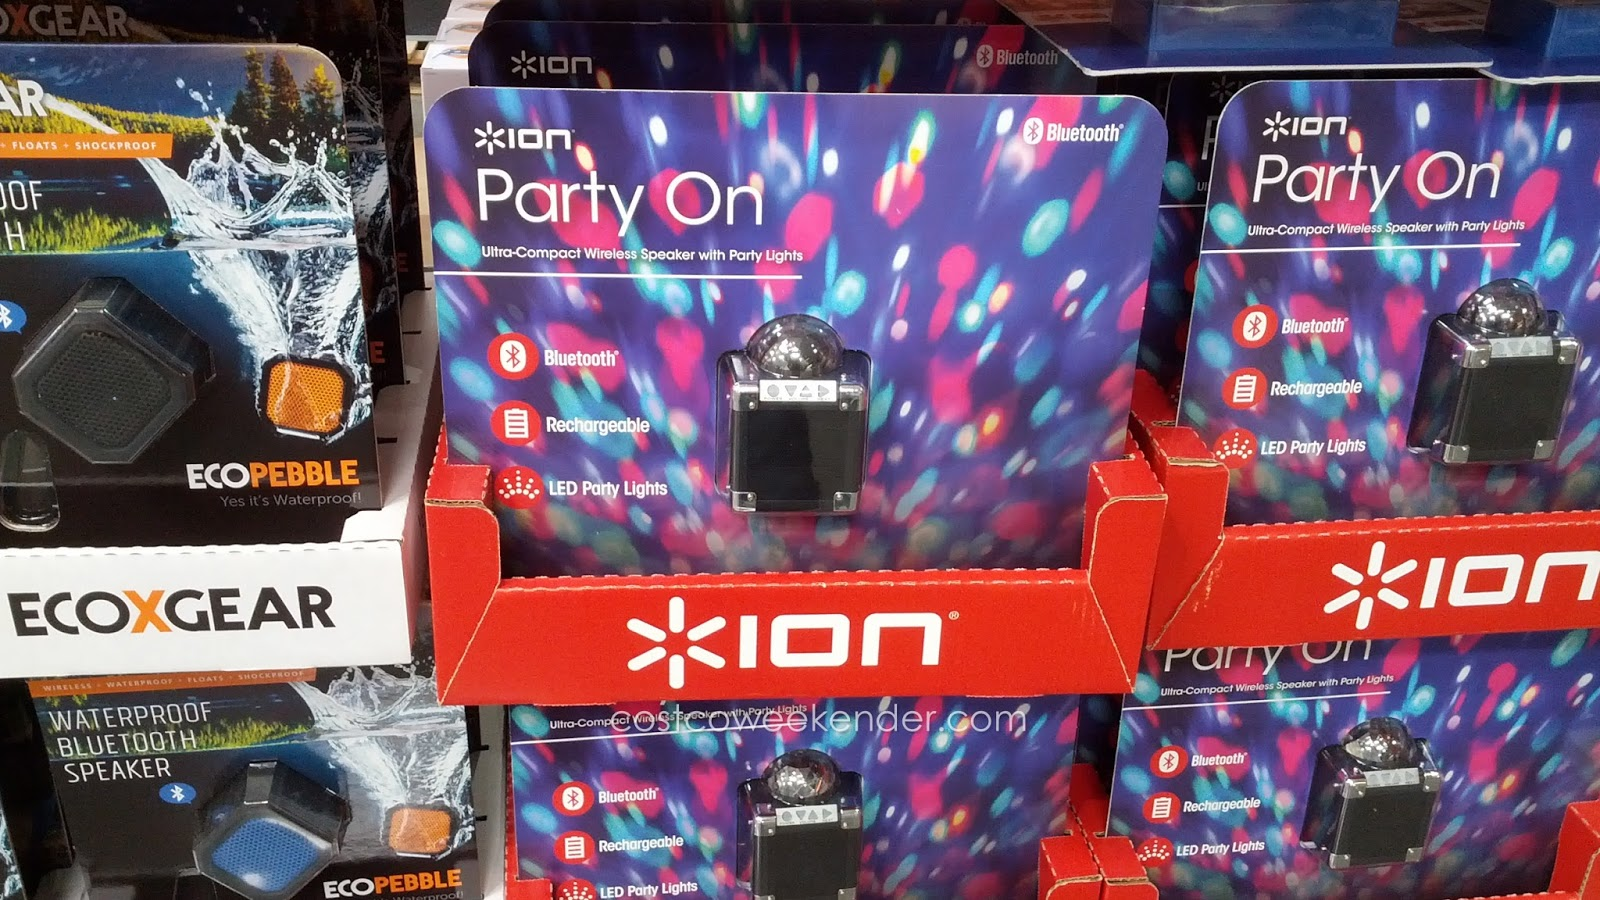 Ion Party On Compact Wireless Bluetooth Speaker Is An Instant Waiting To Hen